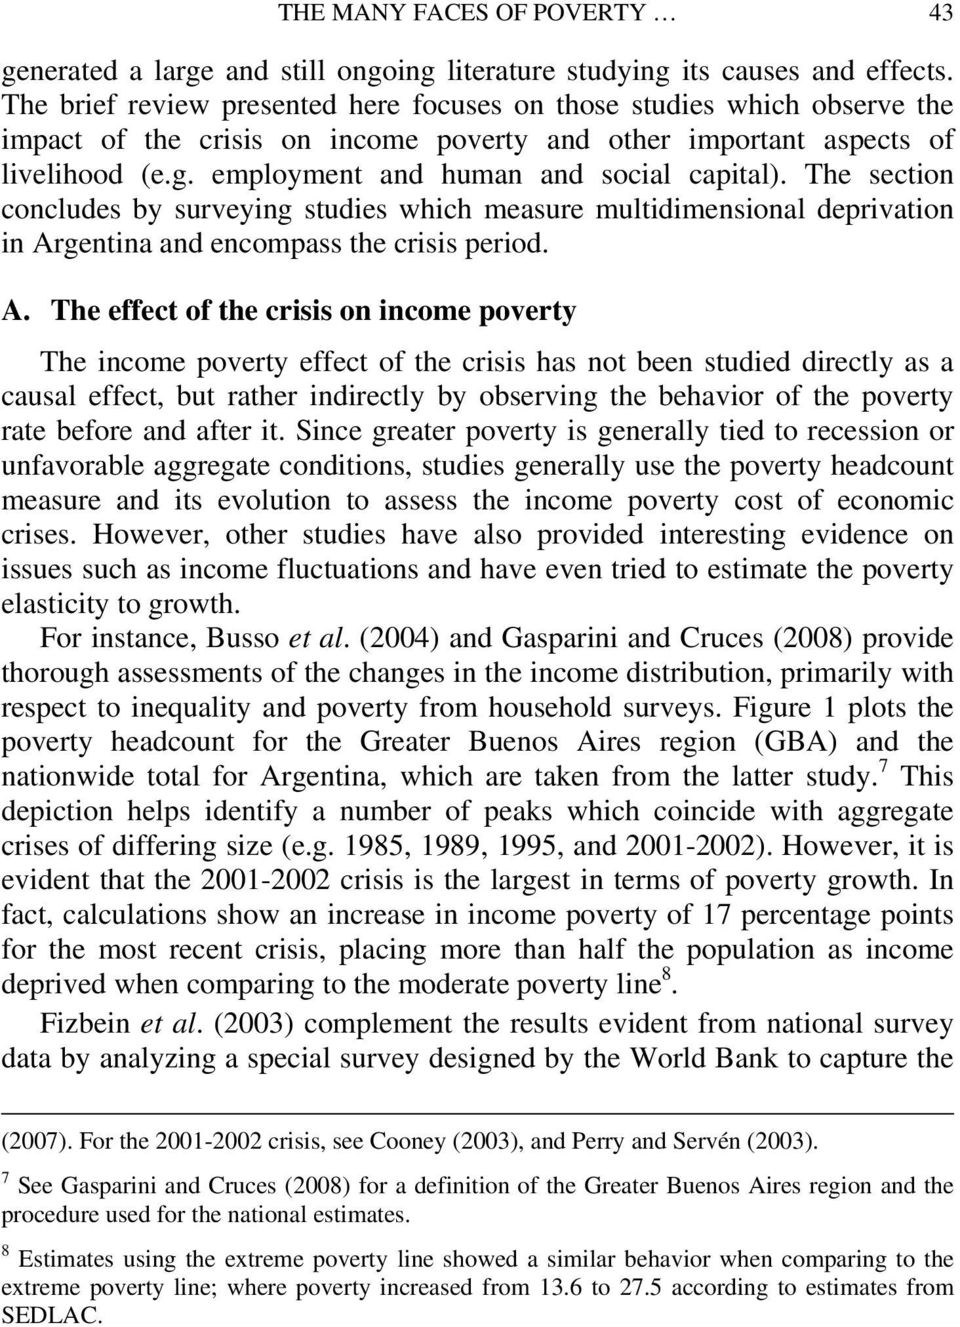 employment and human and social capital). The section concludes by surveying studies which measure multidimensional deprivation in Ar